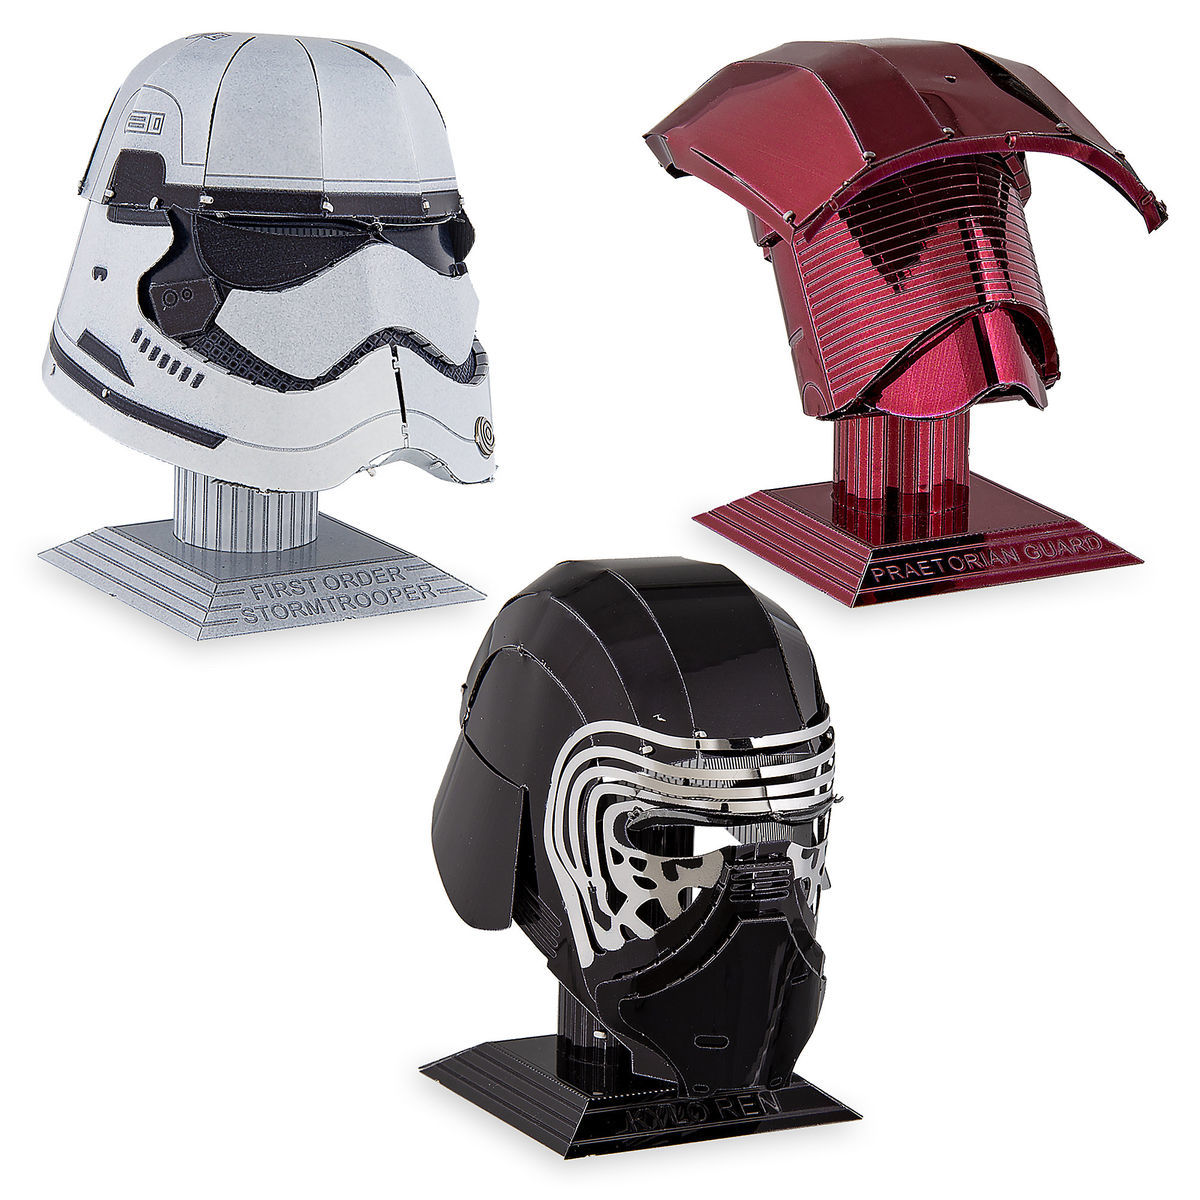 Disney 3D Model Kit - Metal Earth - Star Wars Helmet Pack - Kylo Ren